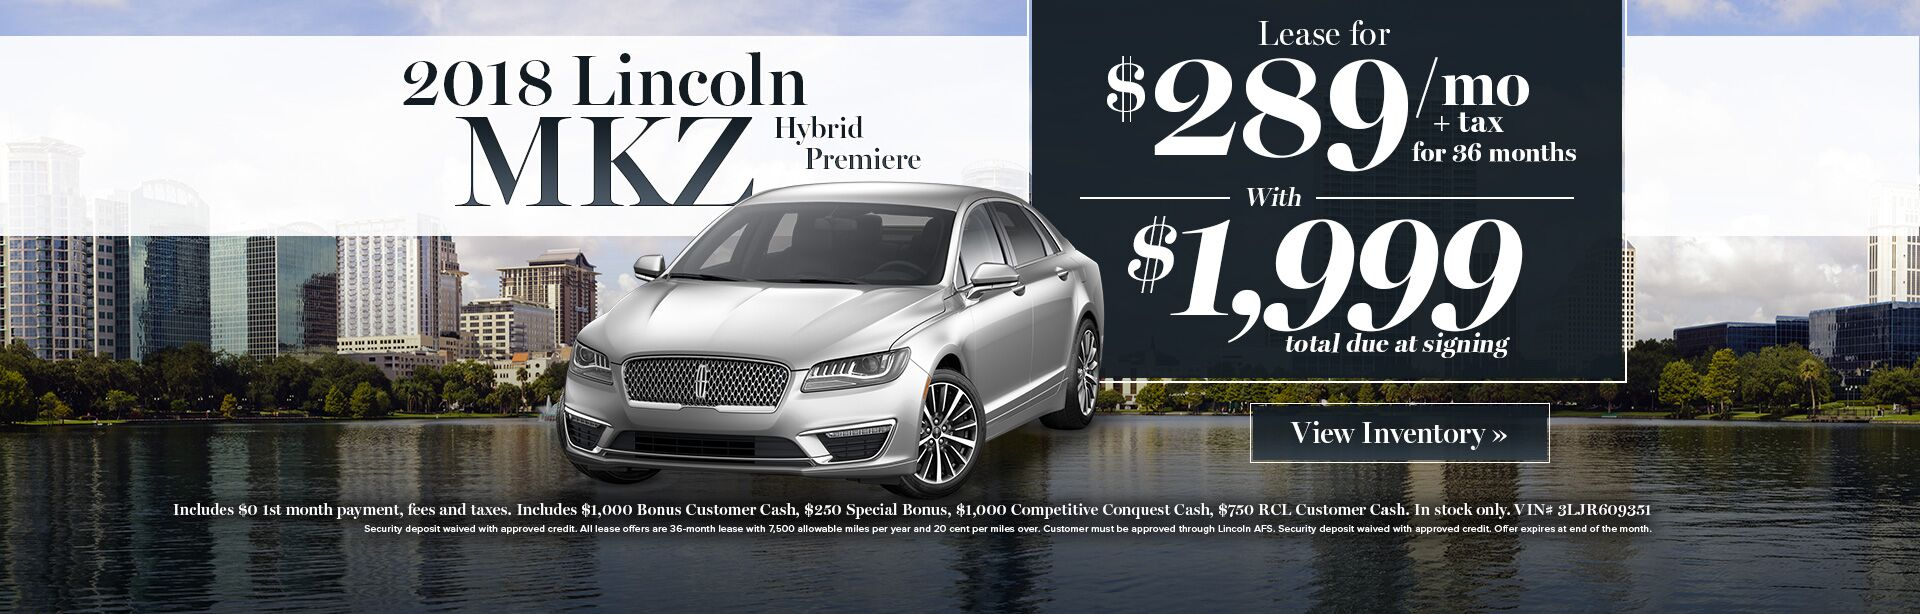 2018 Lincoln MKZ lease special